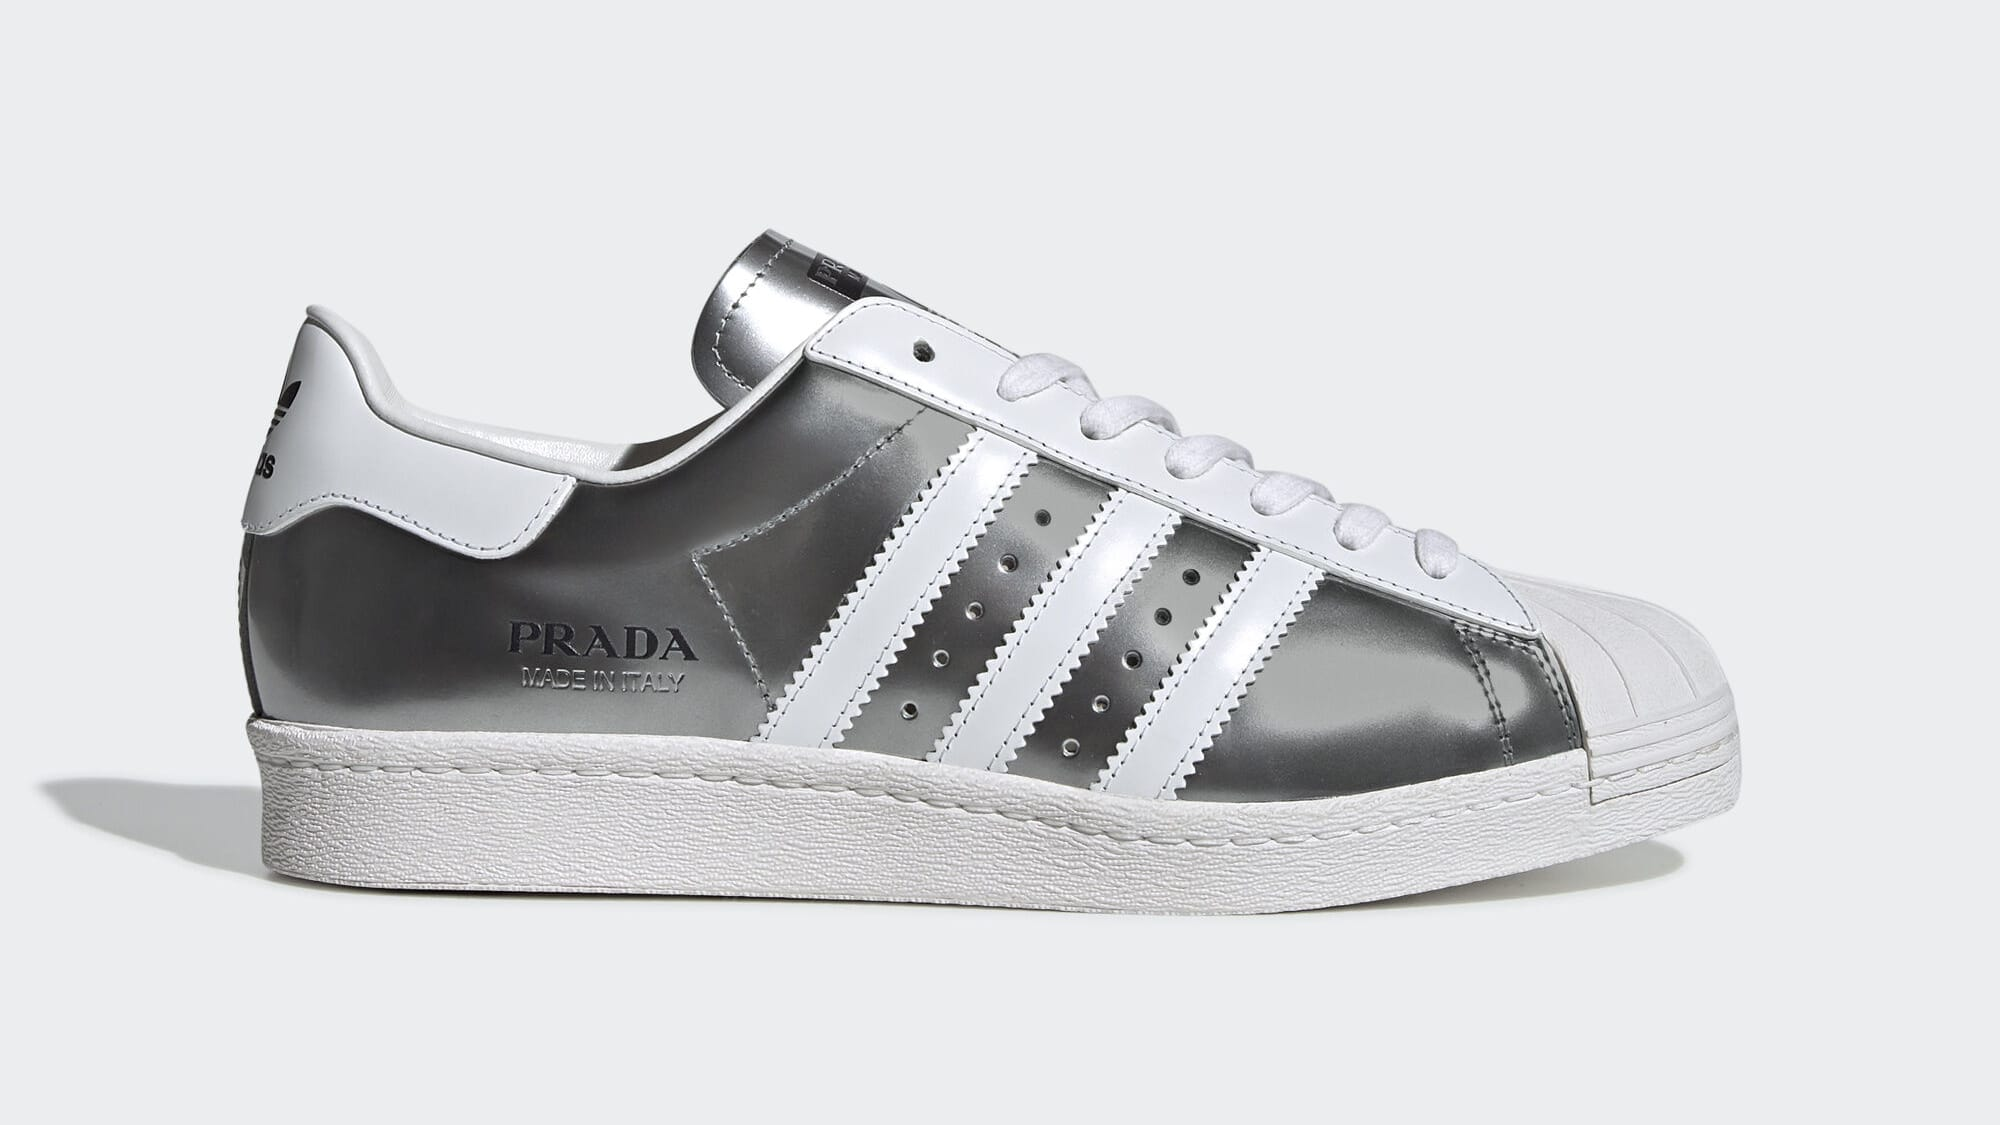 Prada x Adidas Superstar 'Silver Metallic' FX4546 (Lateral)